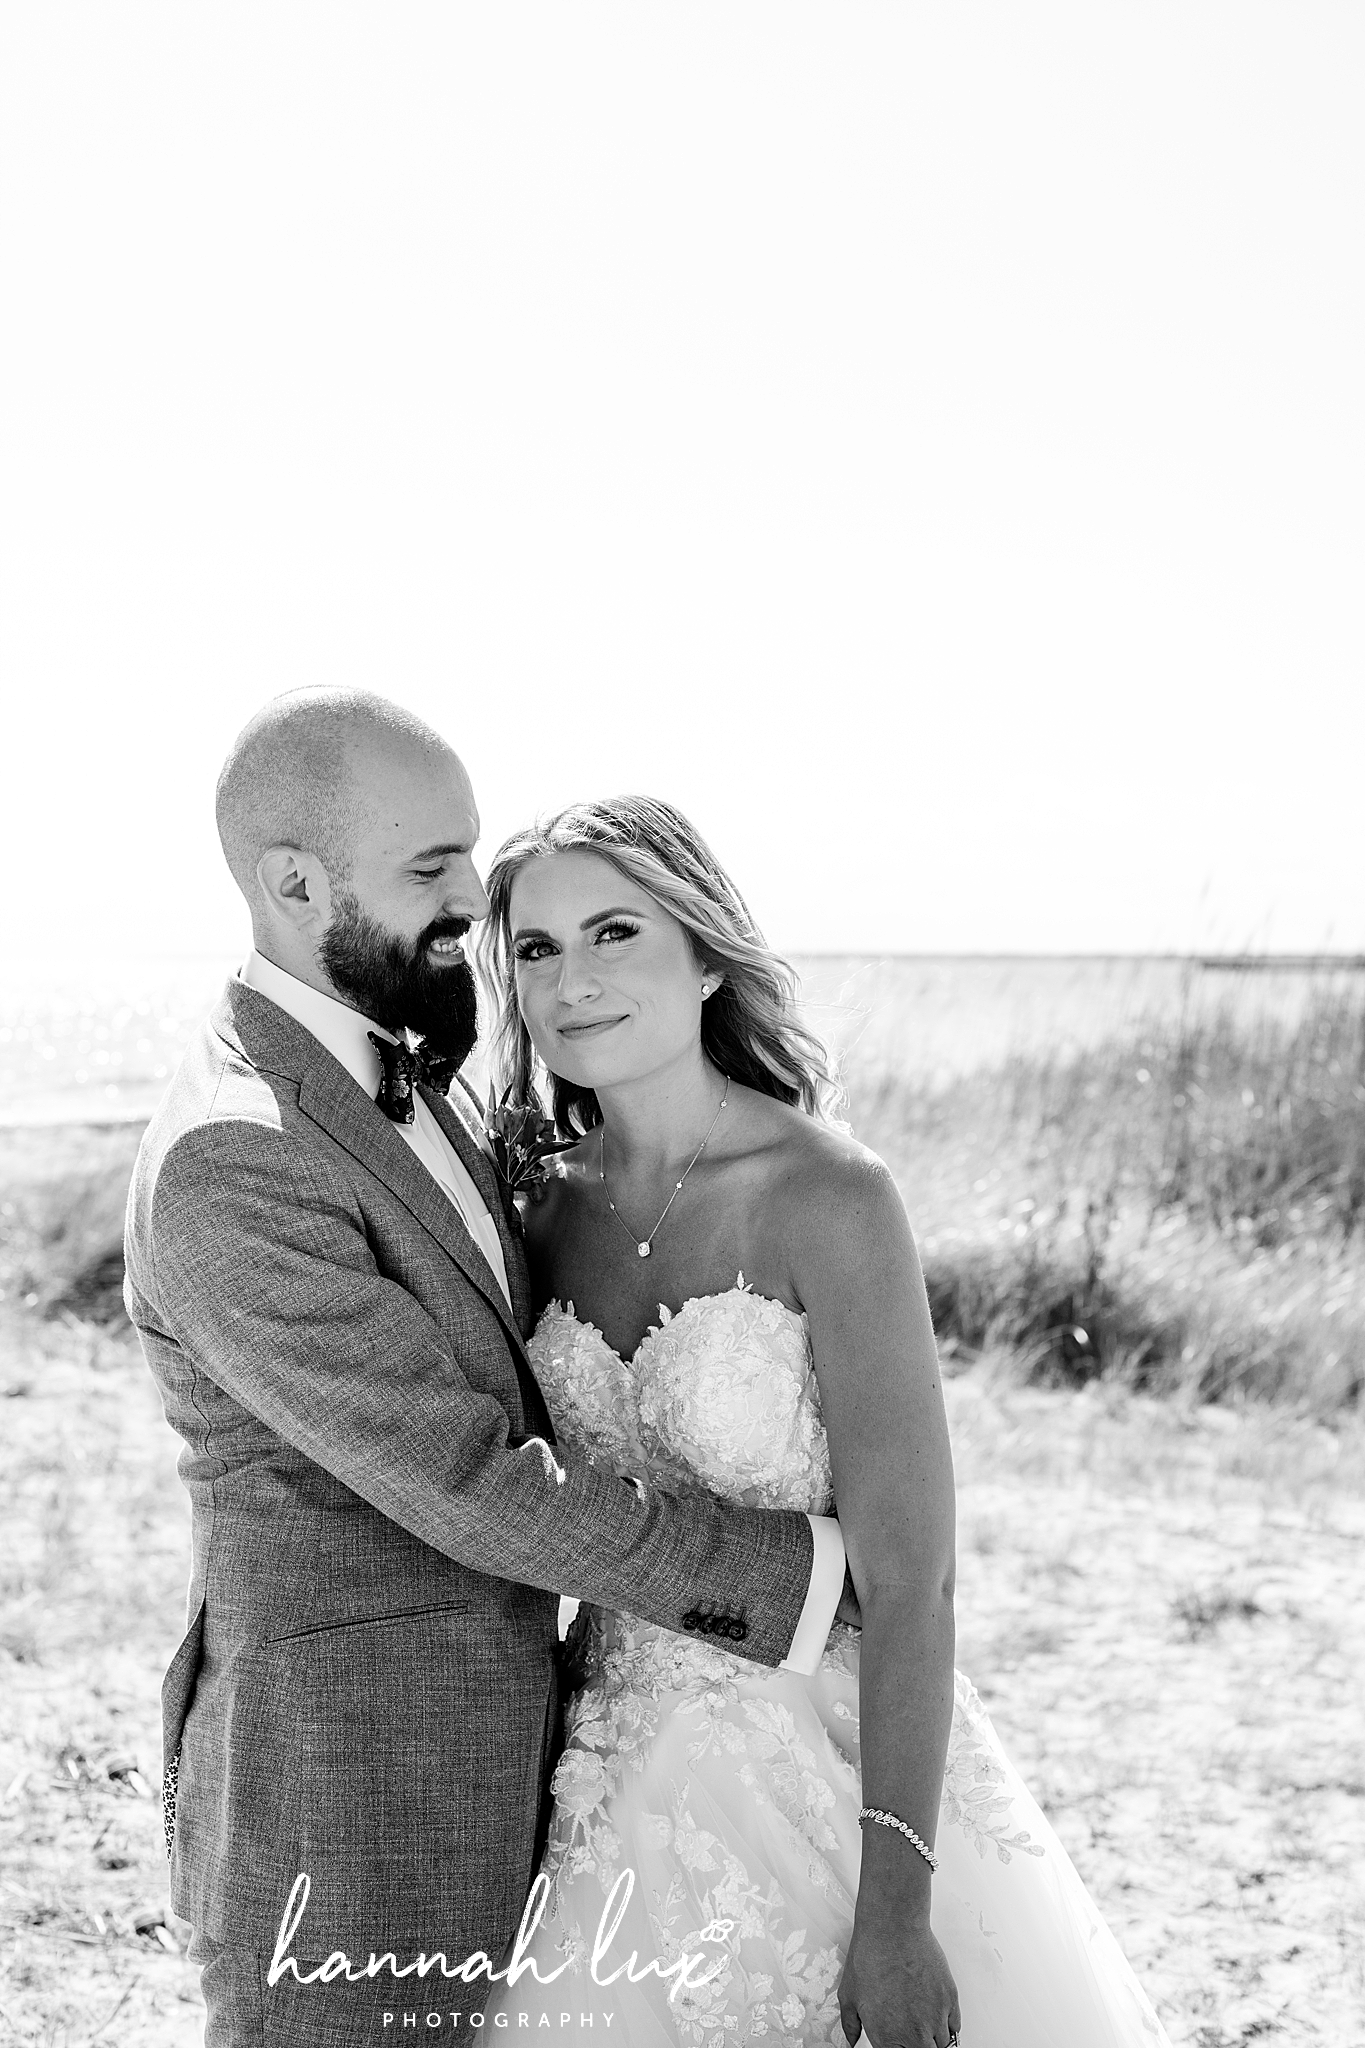 Hannah Lux Photography_4127